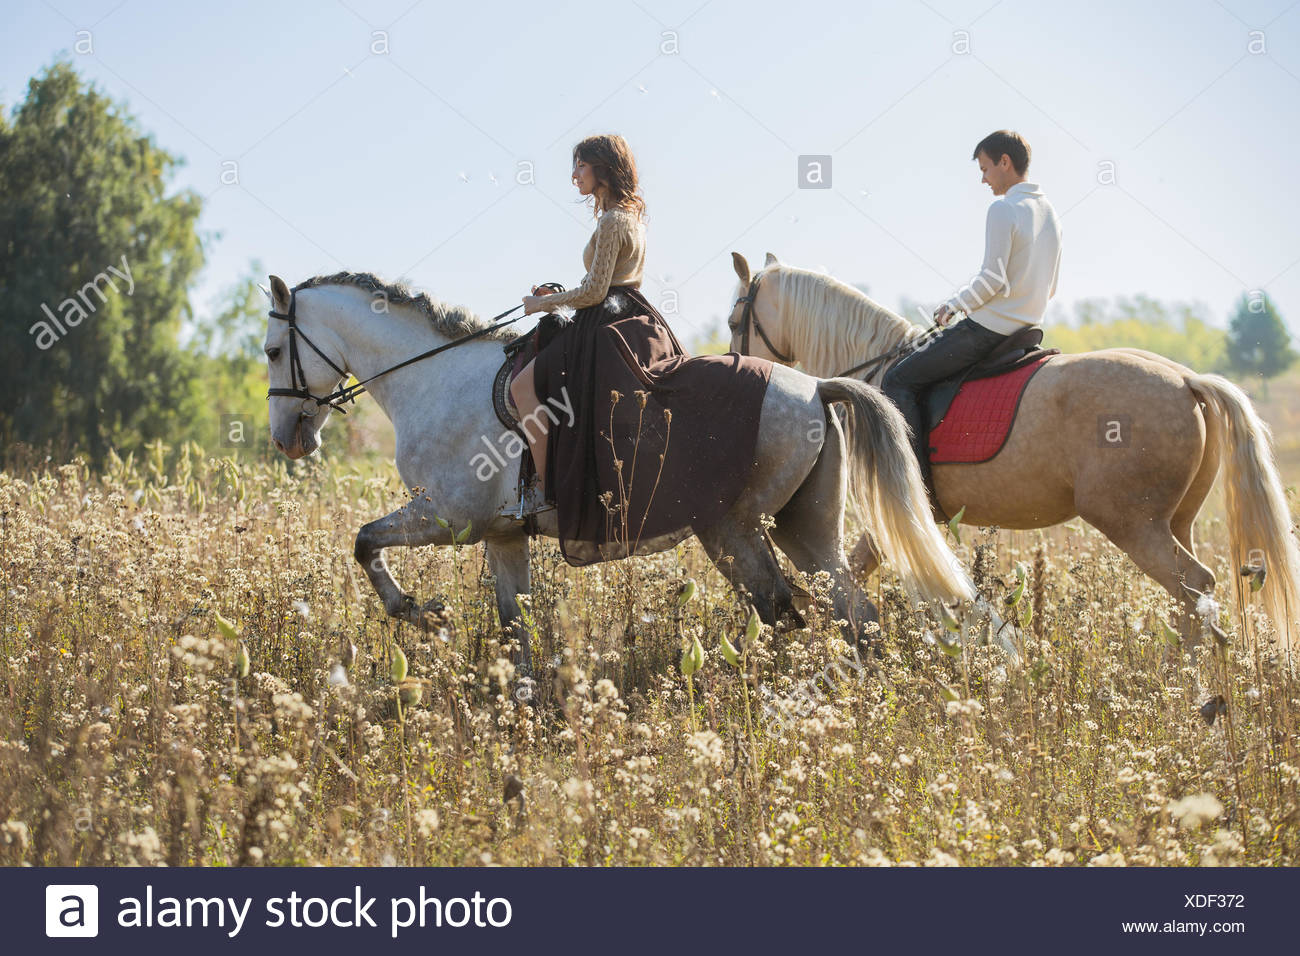 Couple Horse Riding Fotos E Imagenes De Stock Alamy